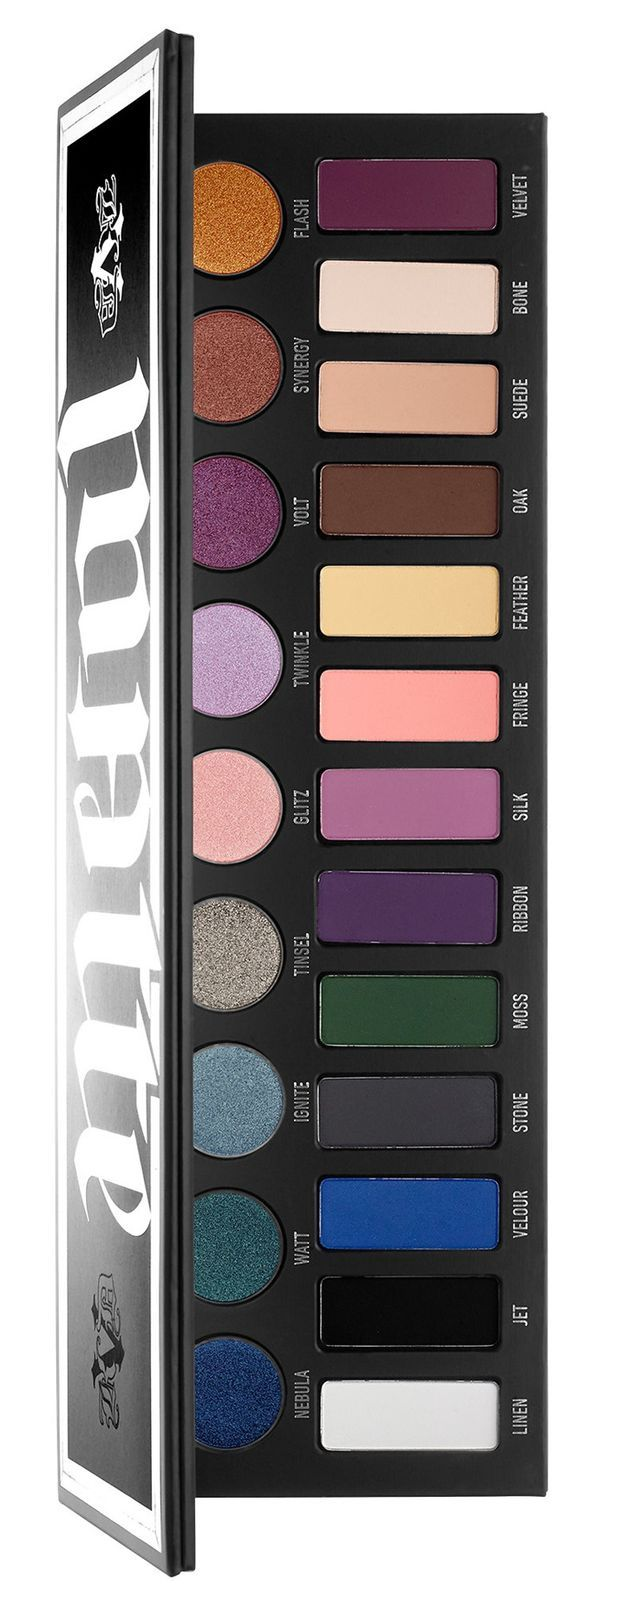 Kat Von D MetalMatte Eyeshadow Palette for Holiday 2016